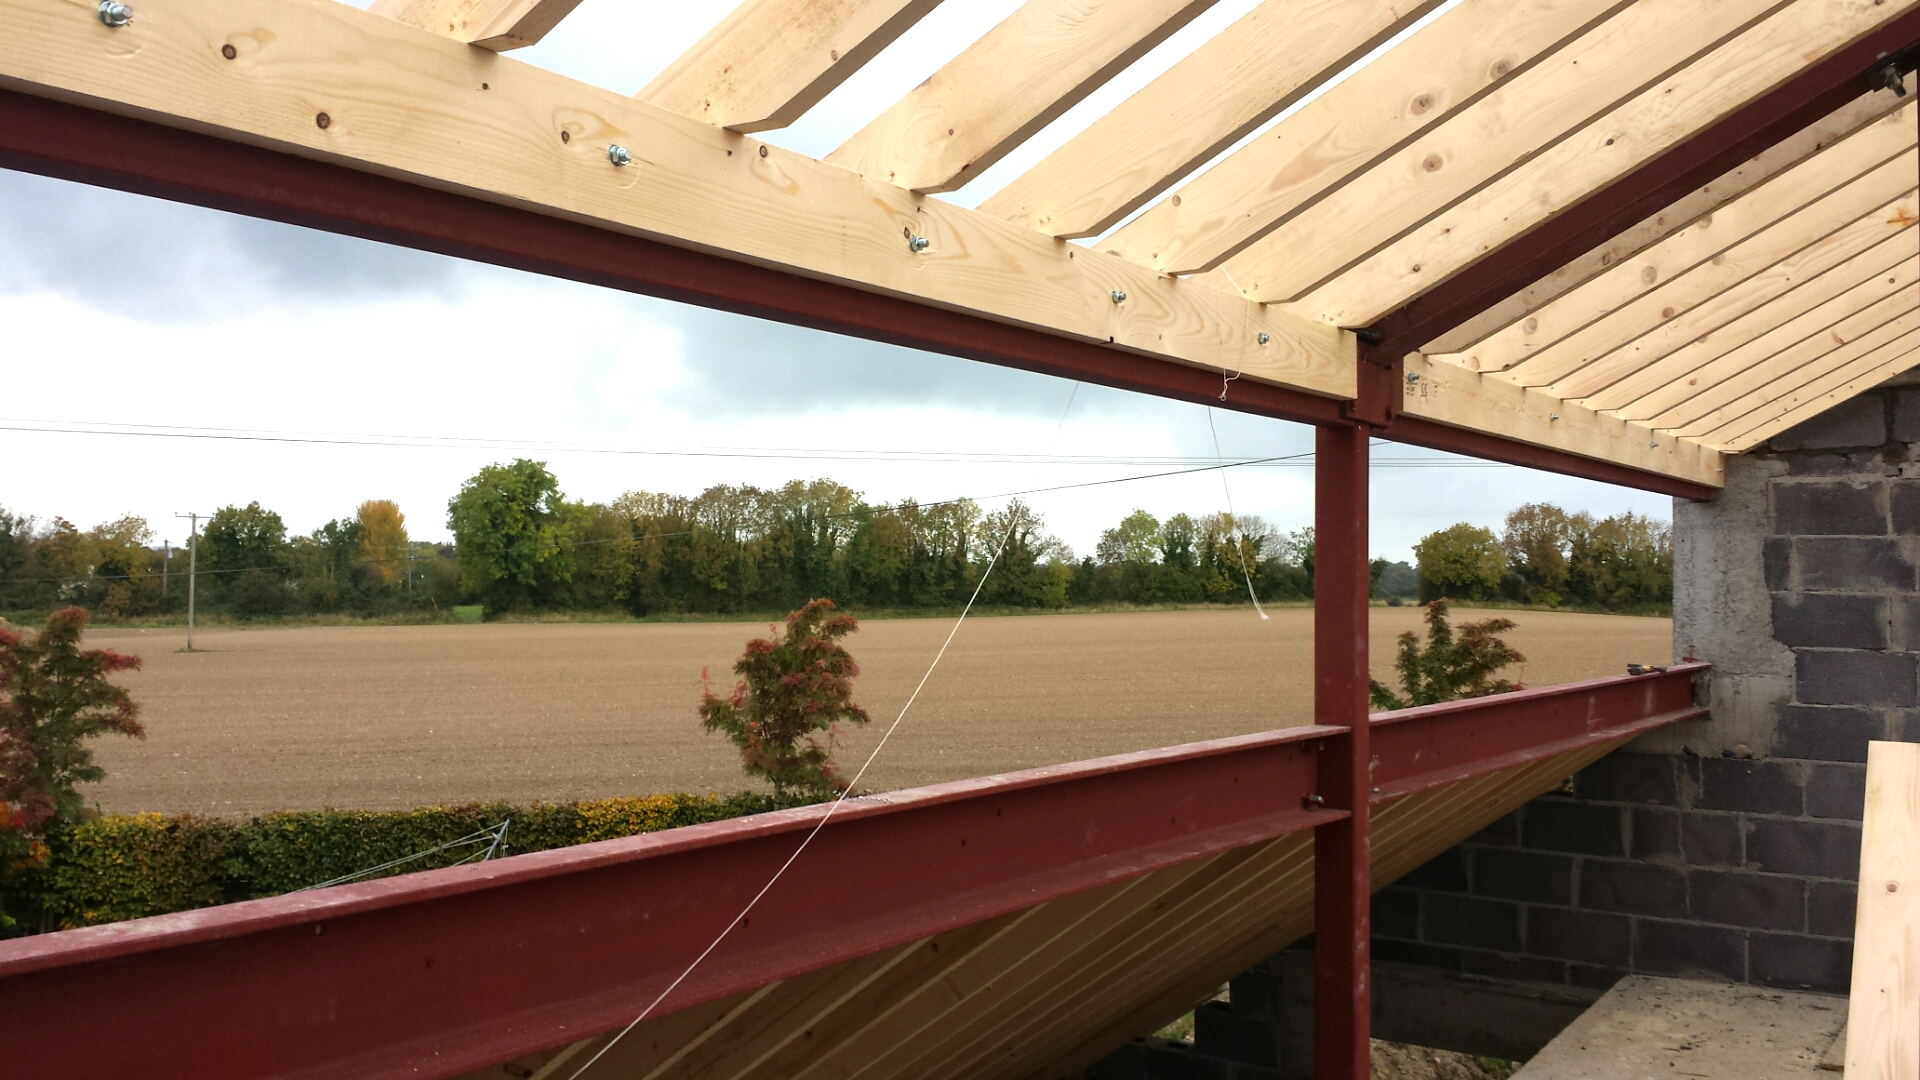 11m long Clerestory Window Overlooking Meath Countryside. Steelwork coming together. Not a bad view to wake up to!